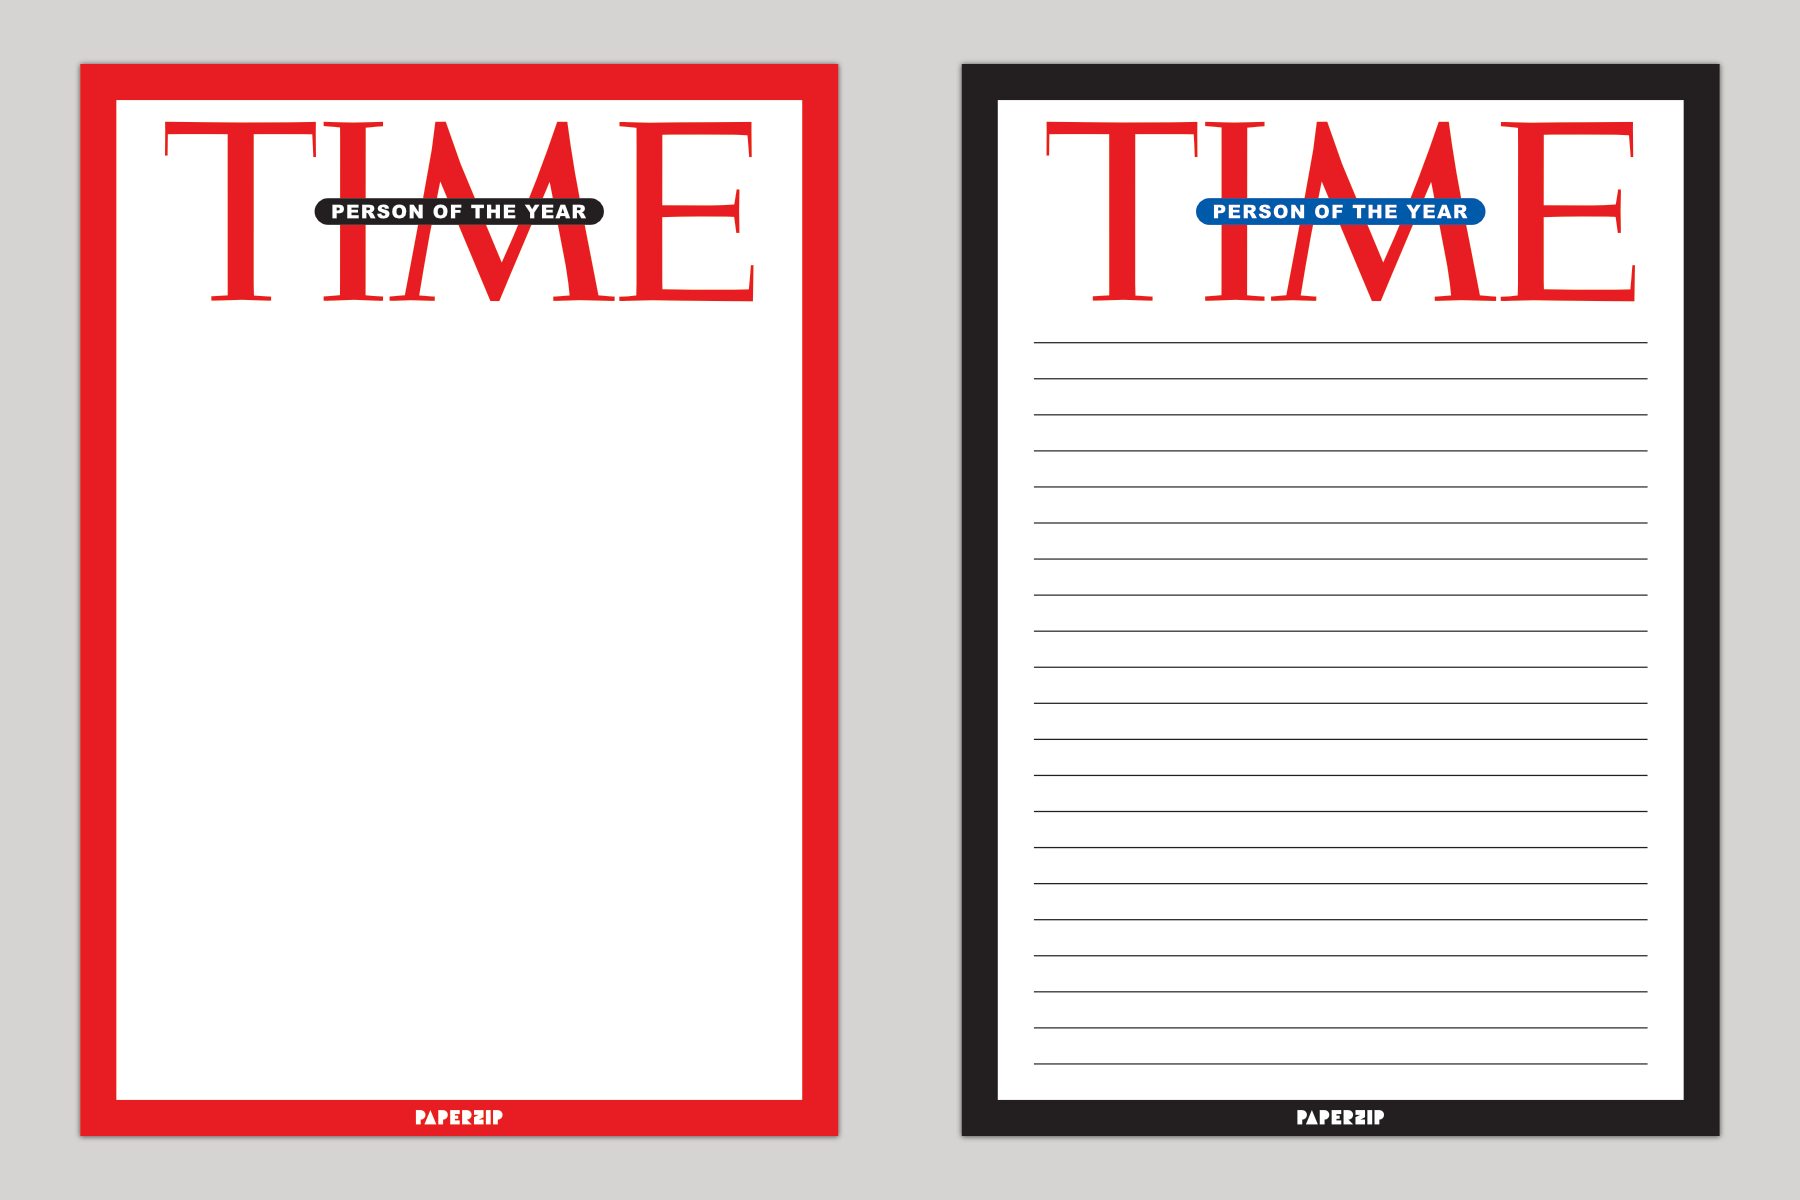 time magazine  u2013 person of the year templates